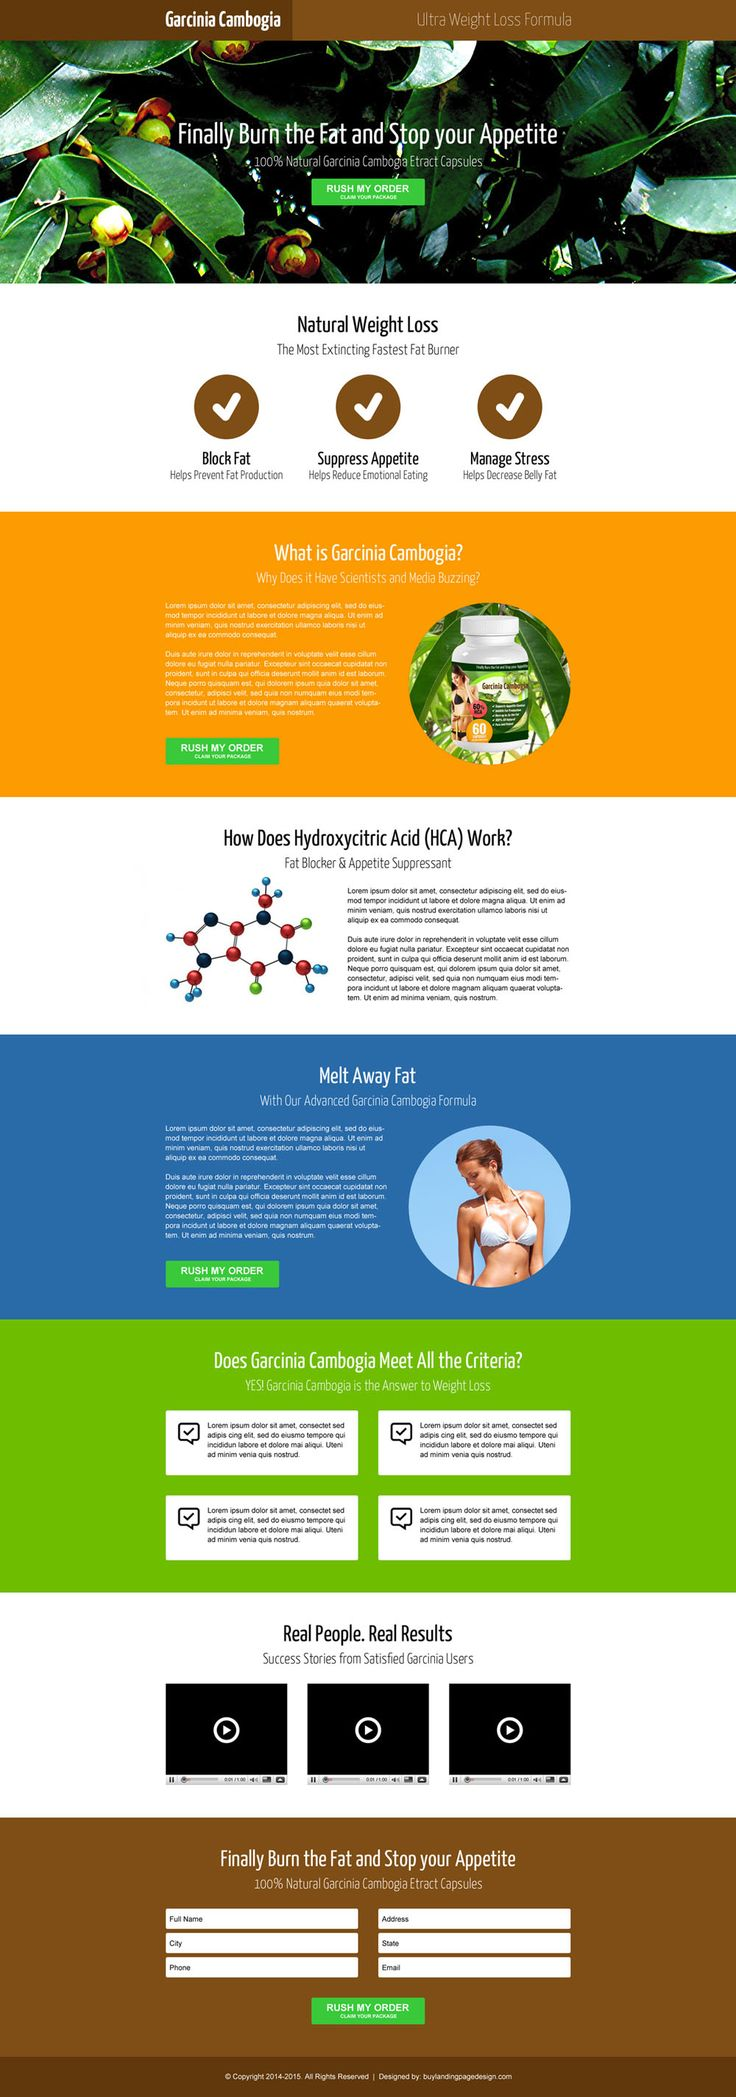 effective garcinia cambogia lead generating opt in box landing page design